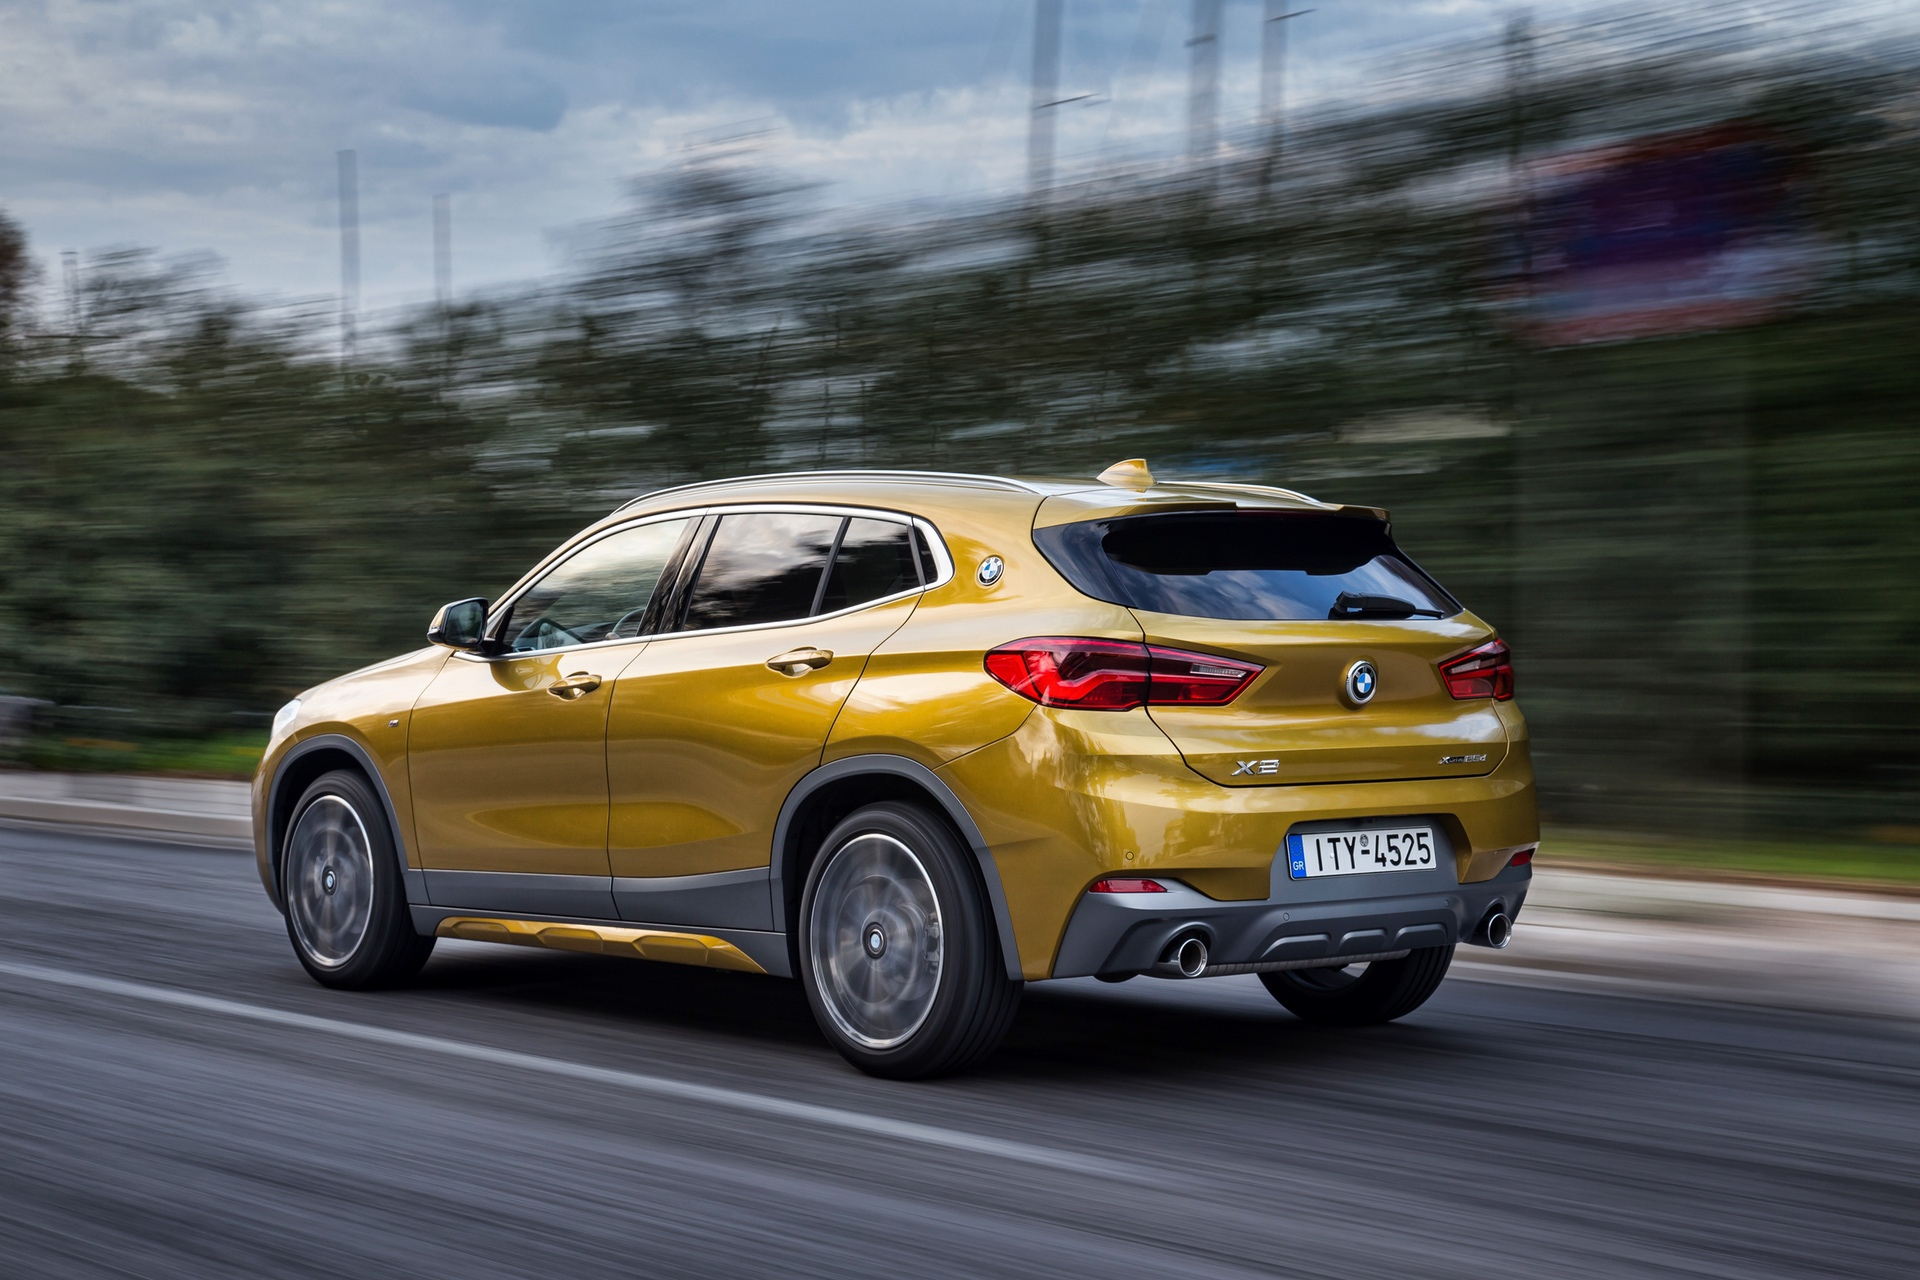 BMW_X2_Greek_presskit_0016